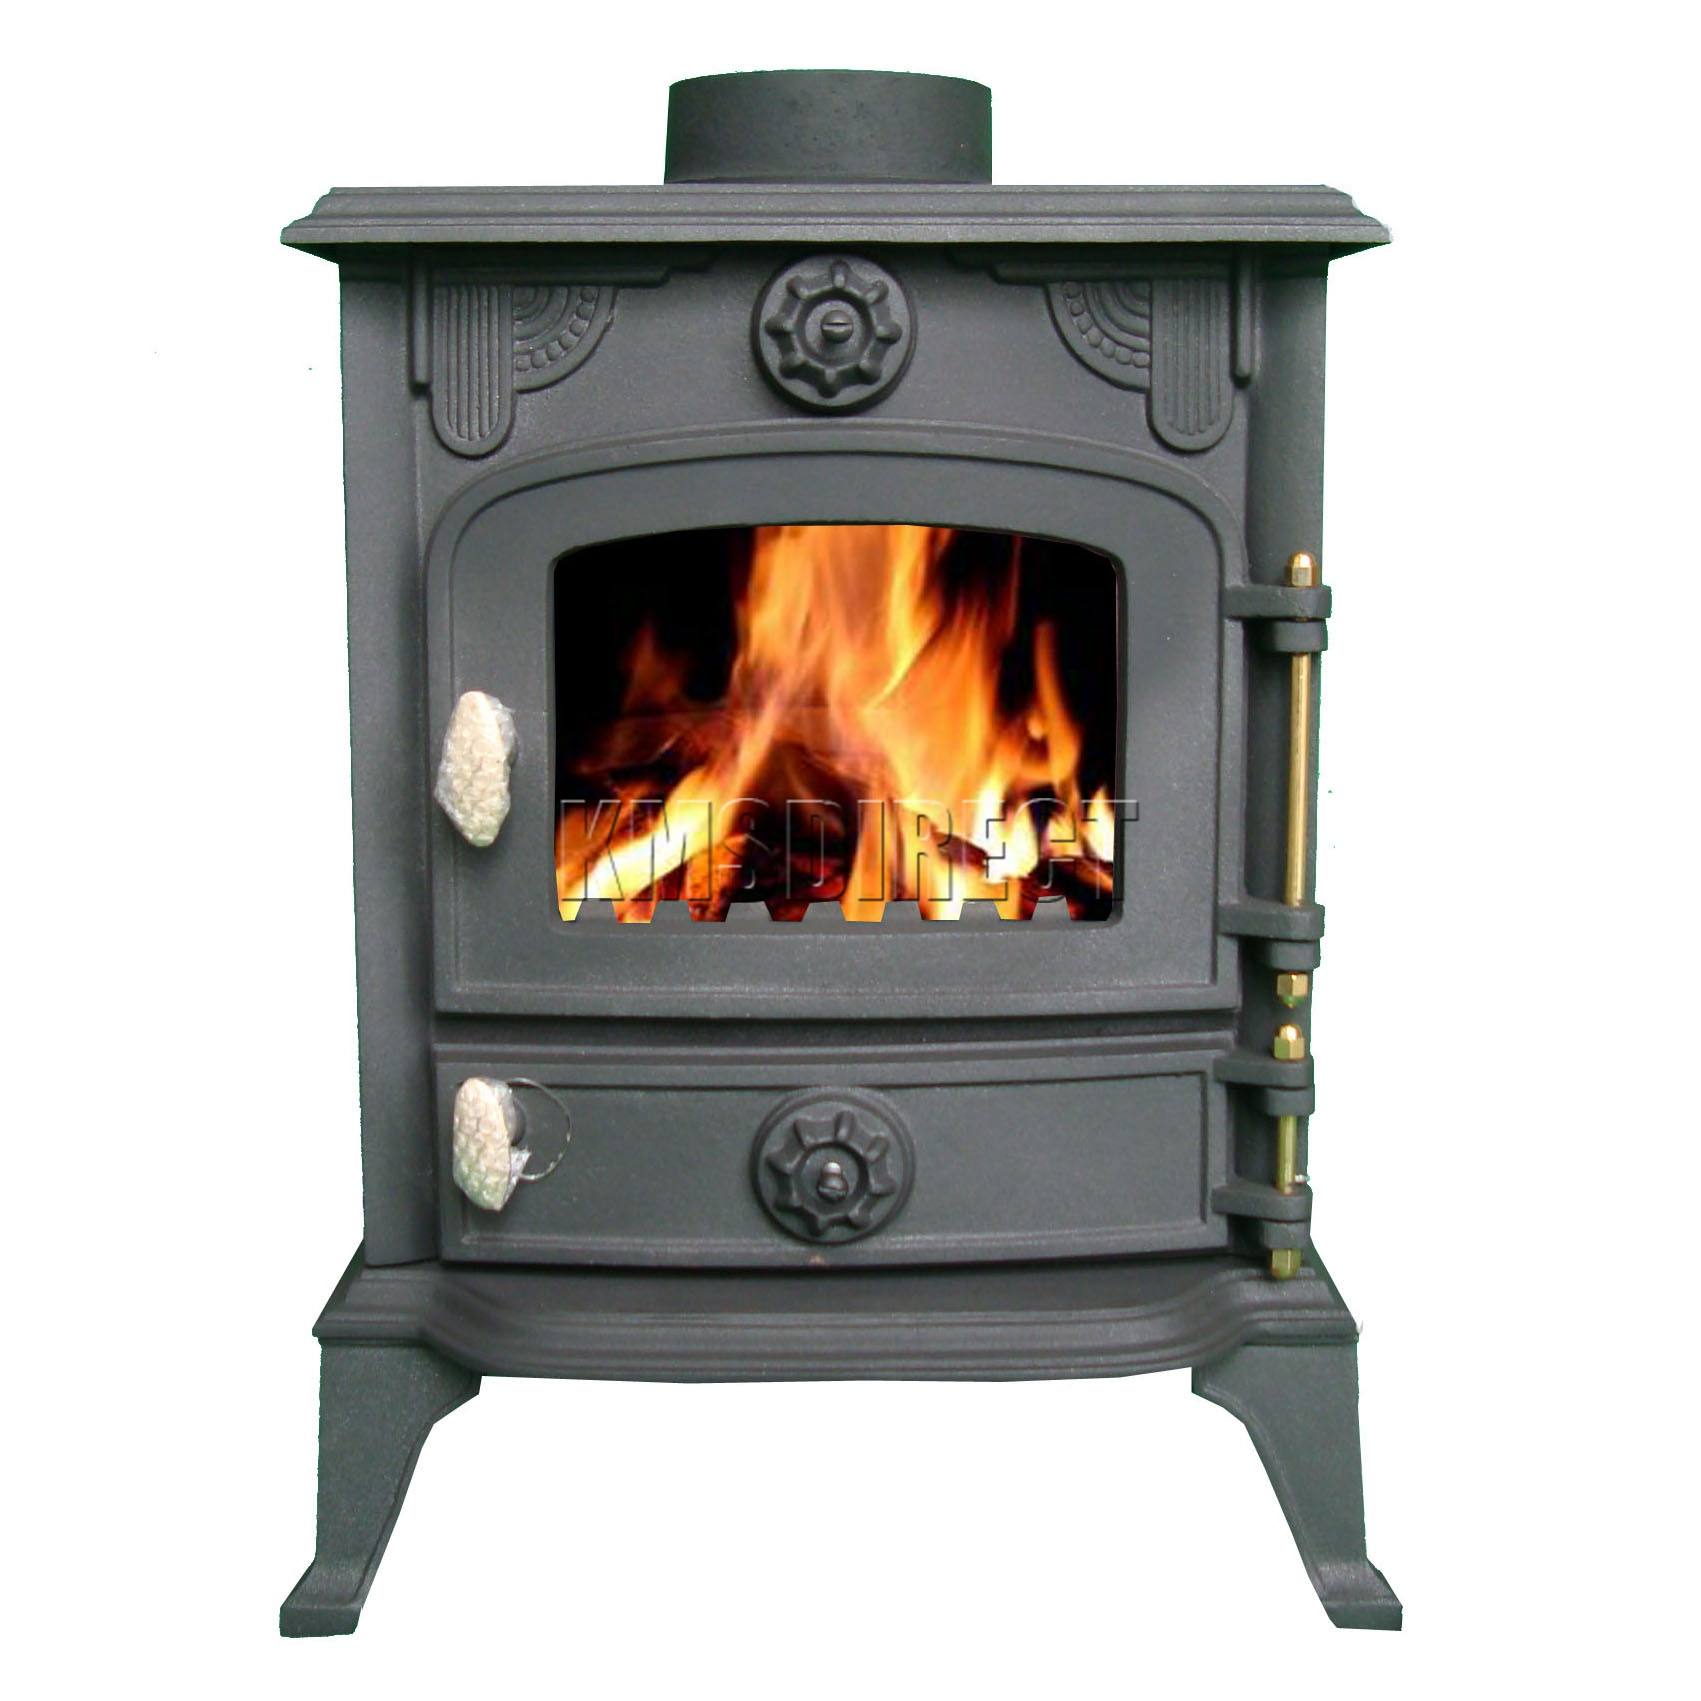 6kw ja013 high efficient cast iron log burner multifuel for Small efficient wood stoves